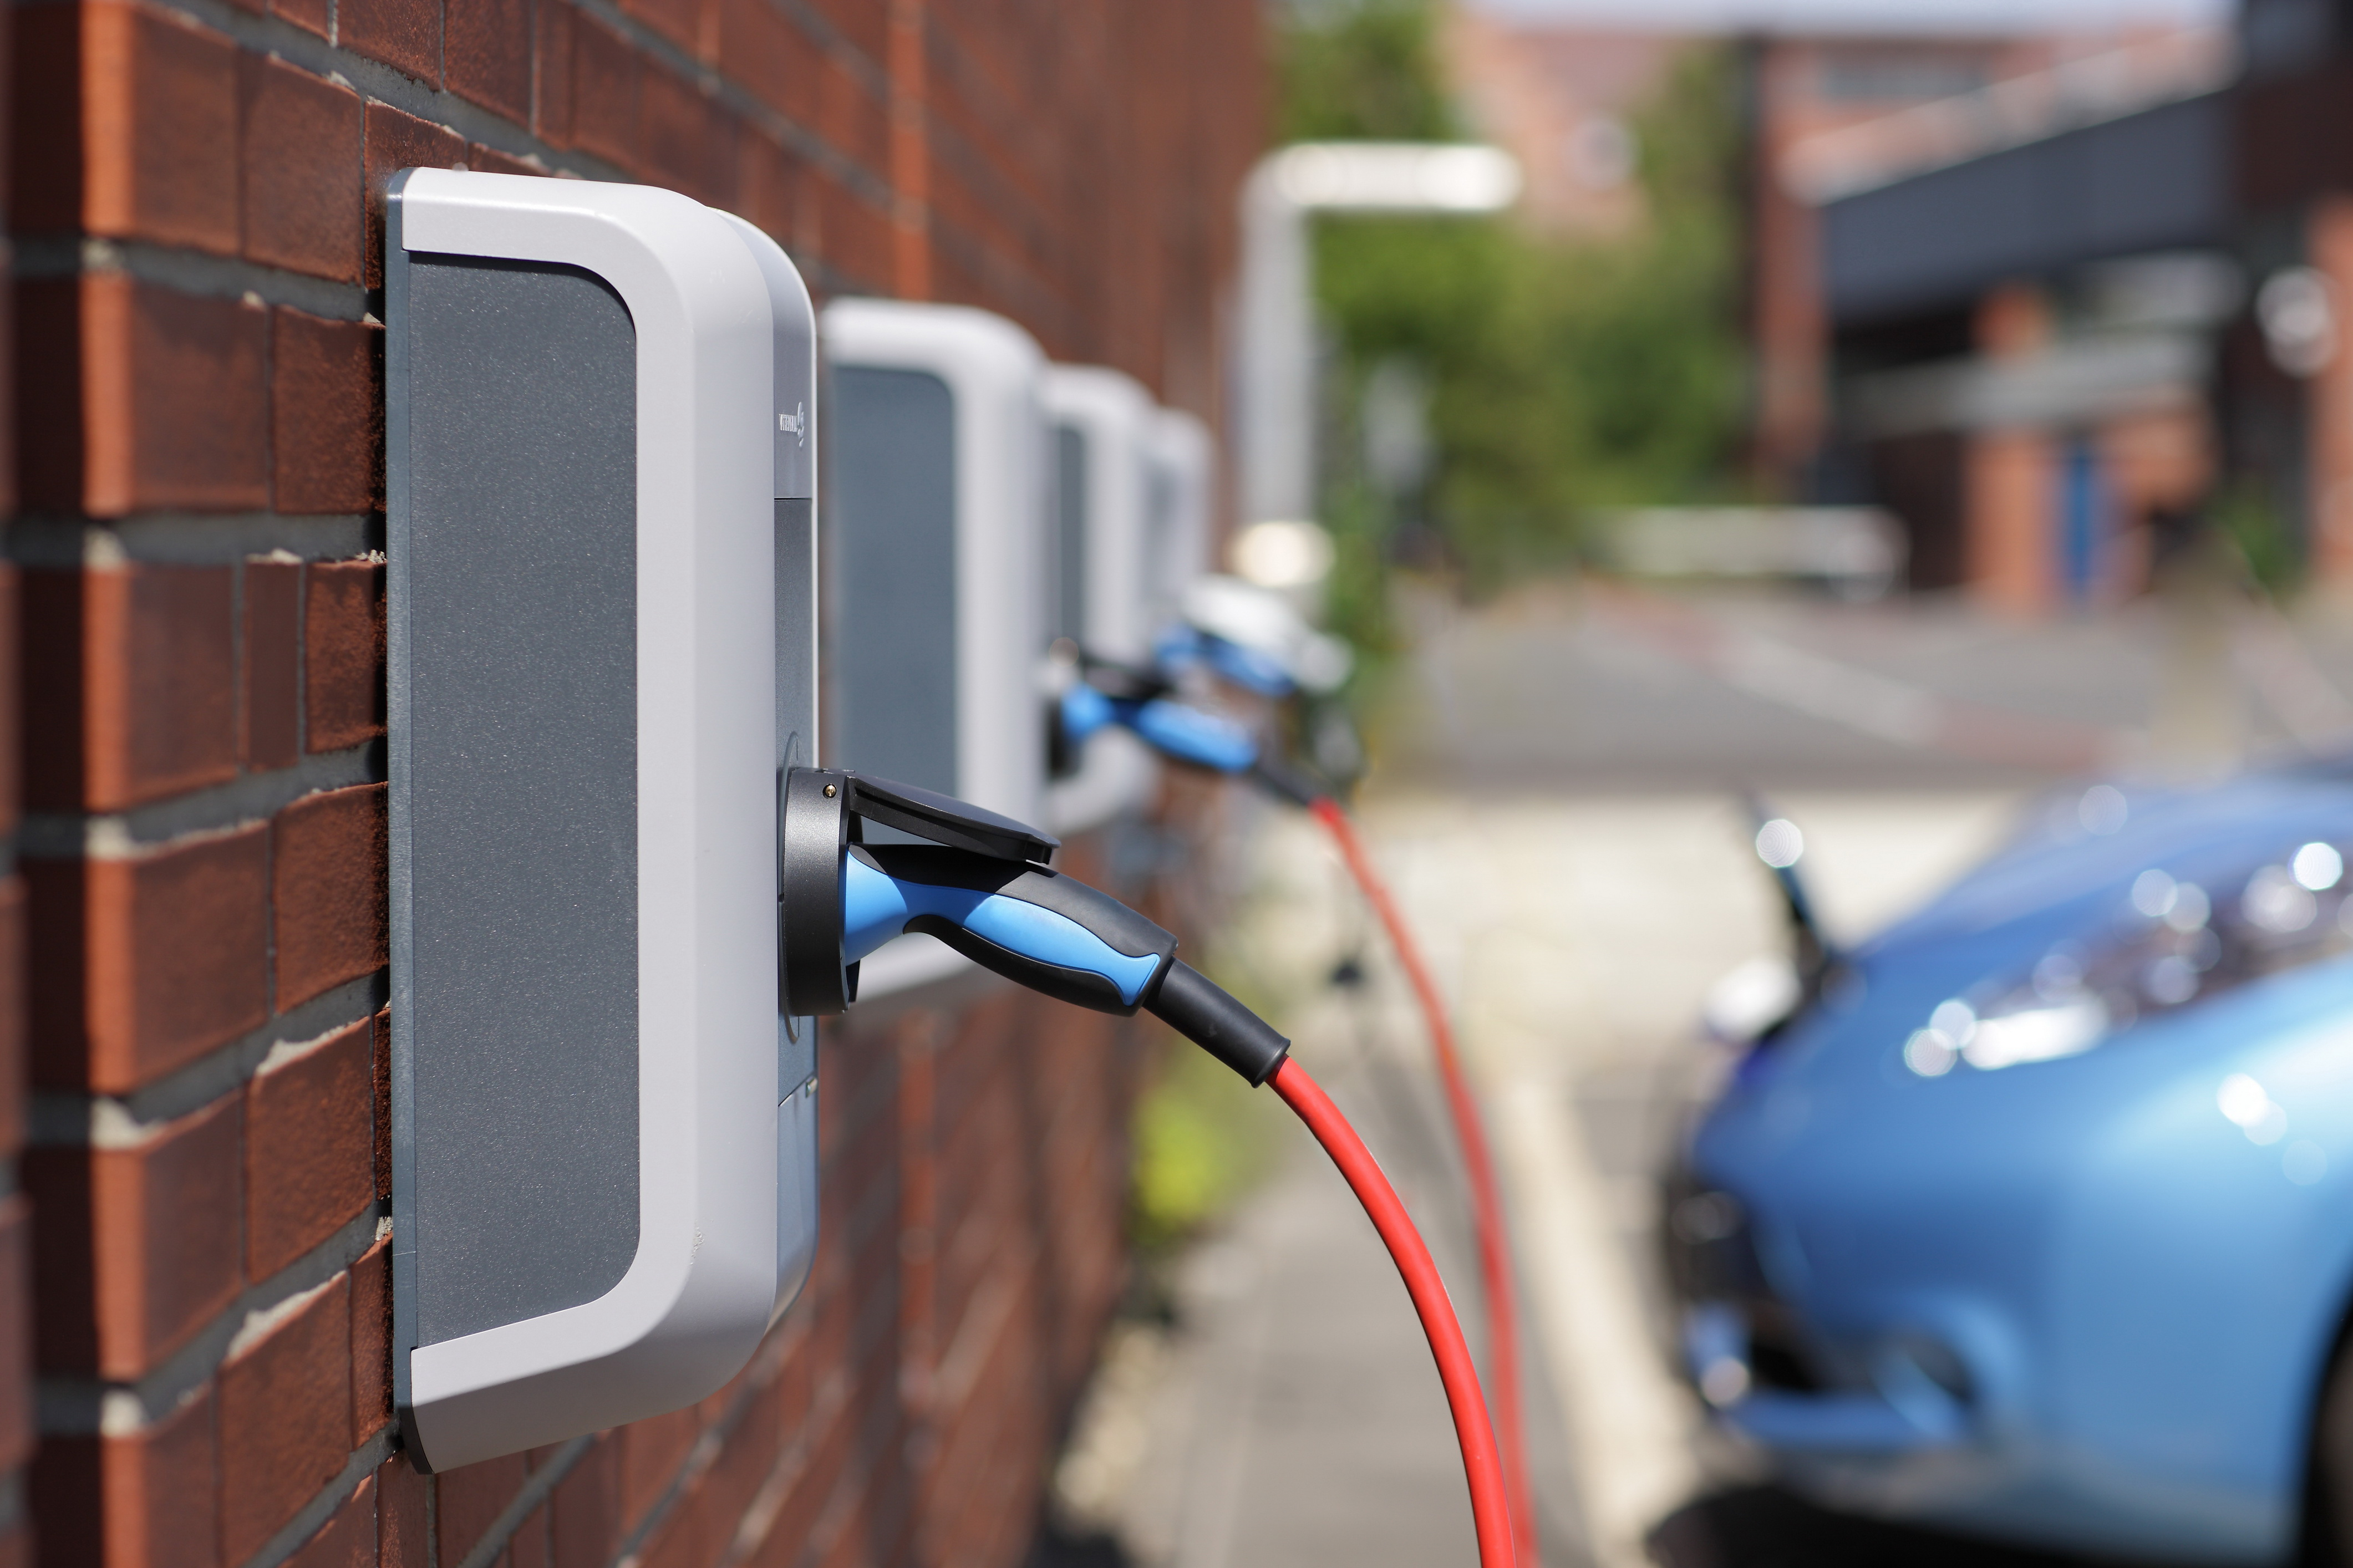 E Mobility Charging